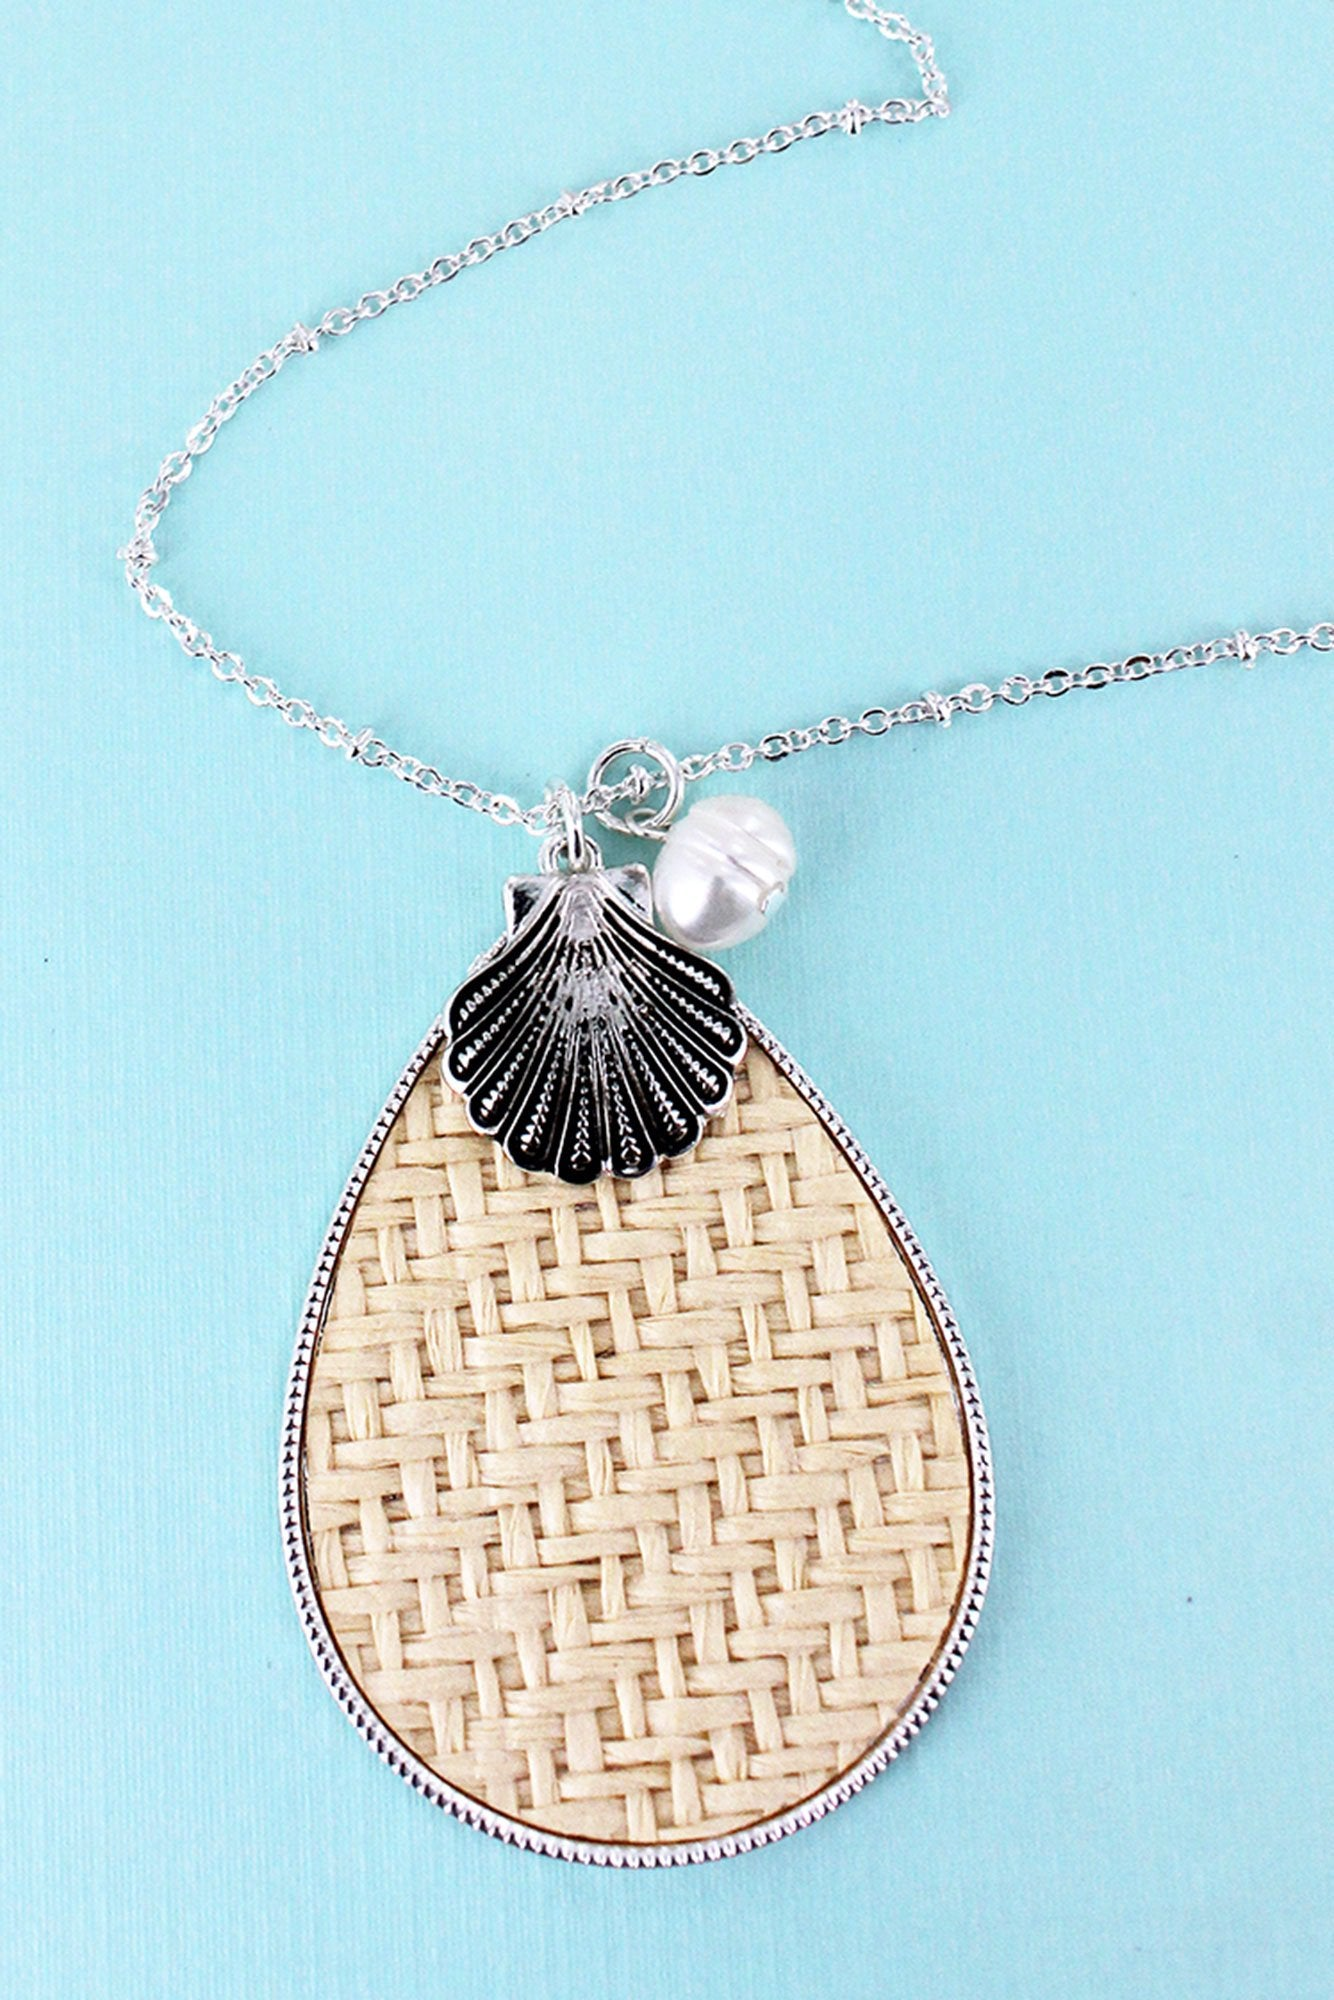 Ivory Rattan Teardrop with Silvertone Seashell Pendant Necklace